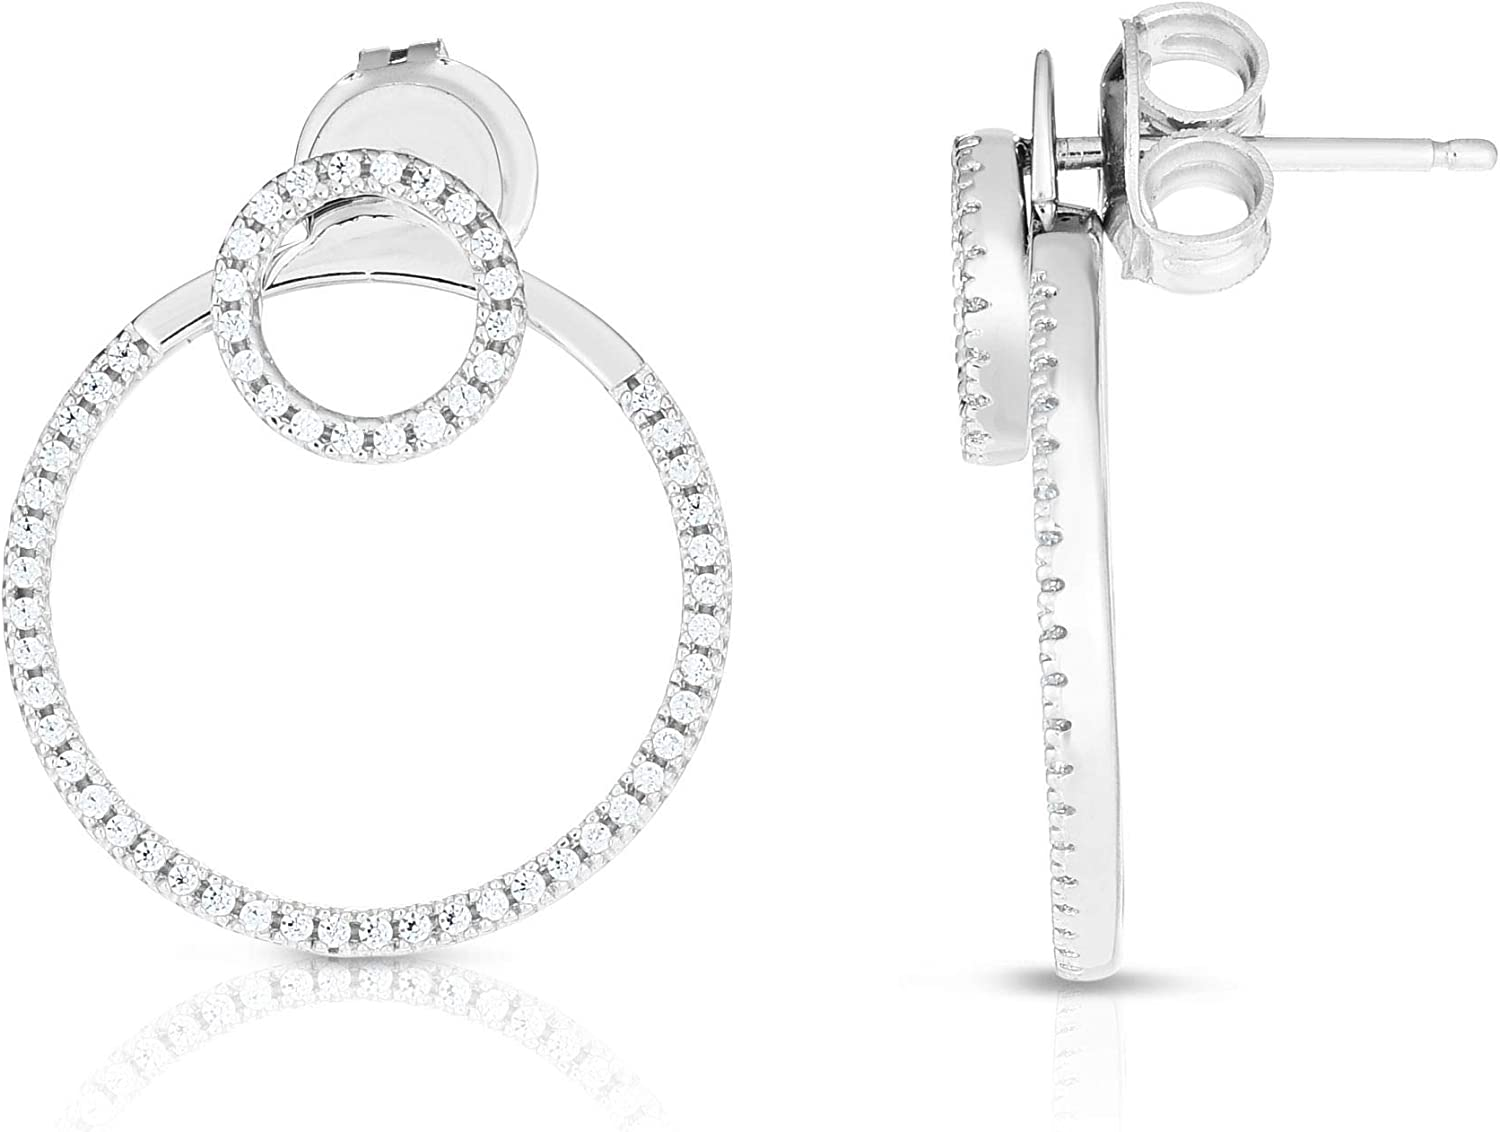 Silver with Rhodium White Clearance SALE! Limited time! Finish Fancy Shiny Opening large release sale Earring Round Post